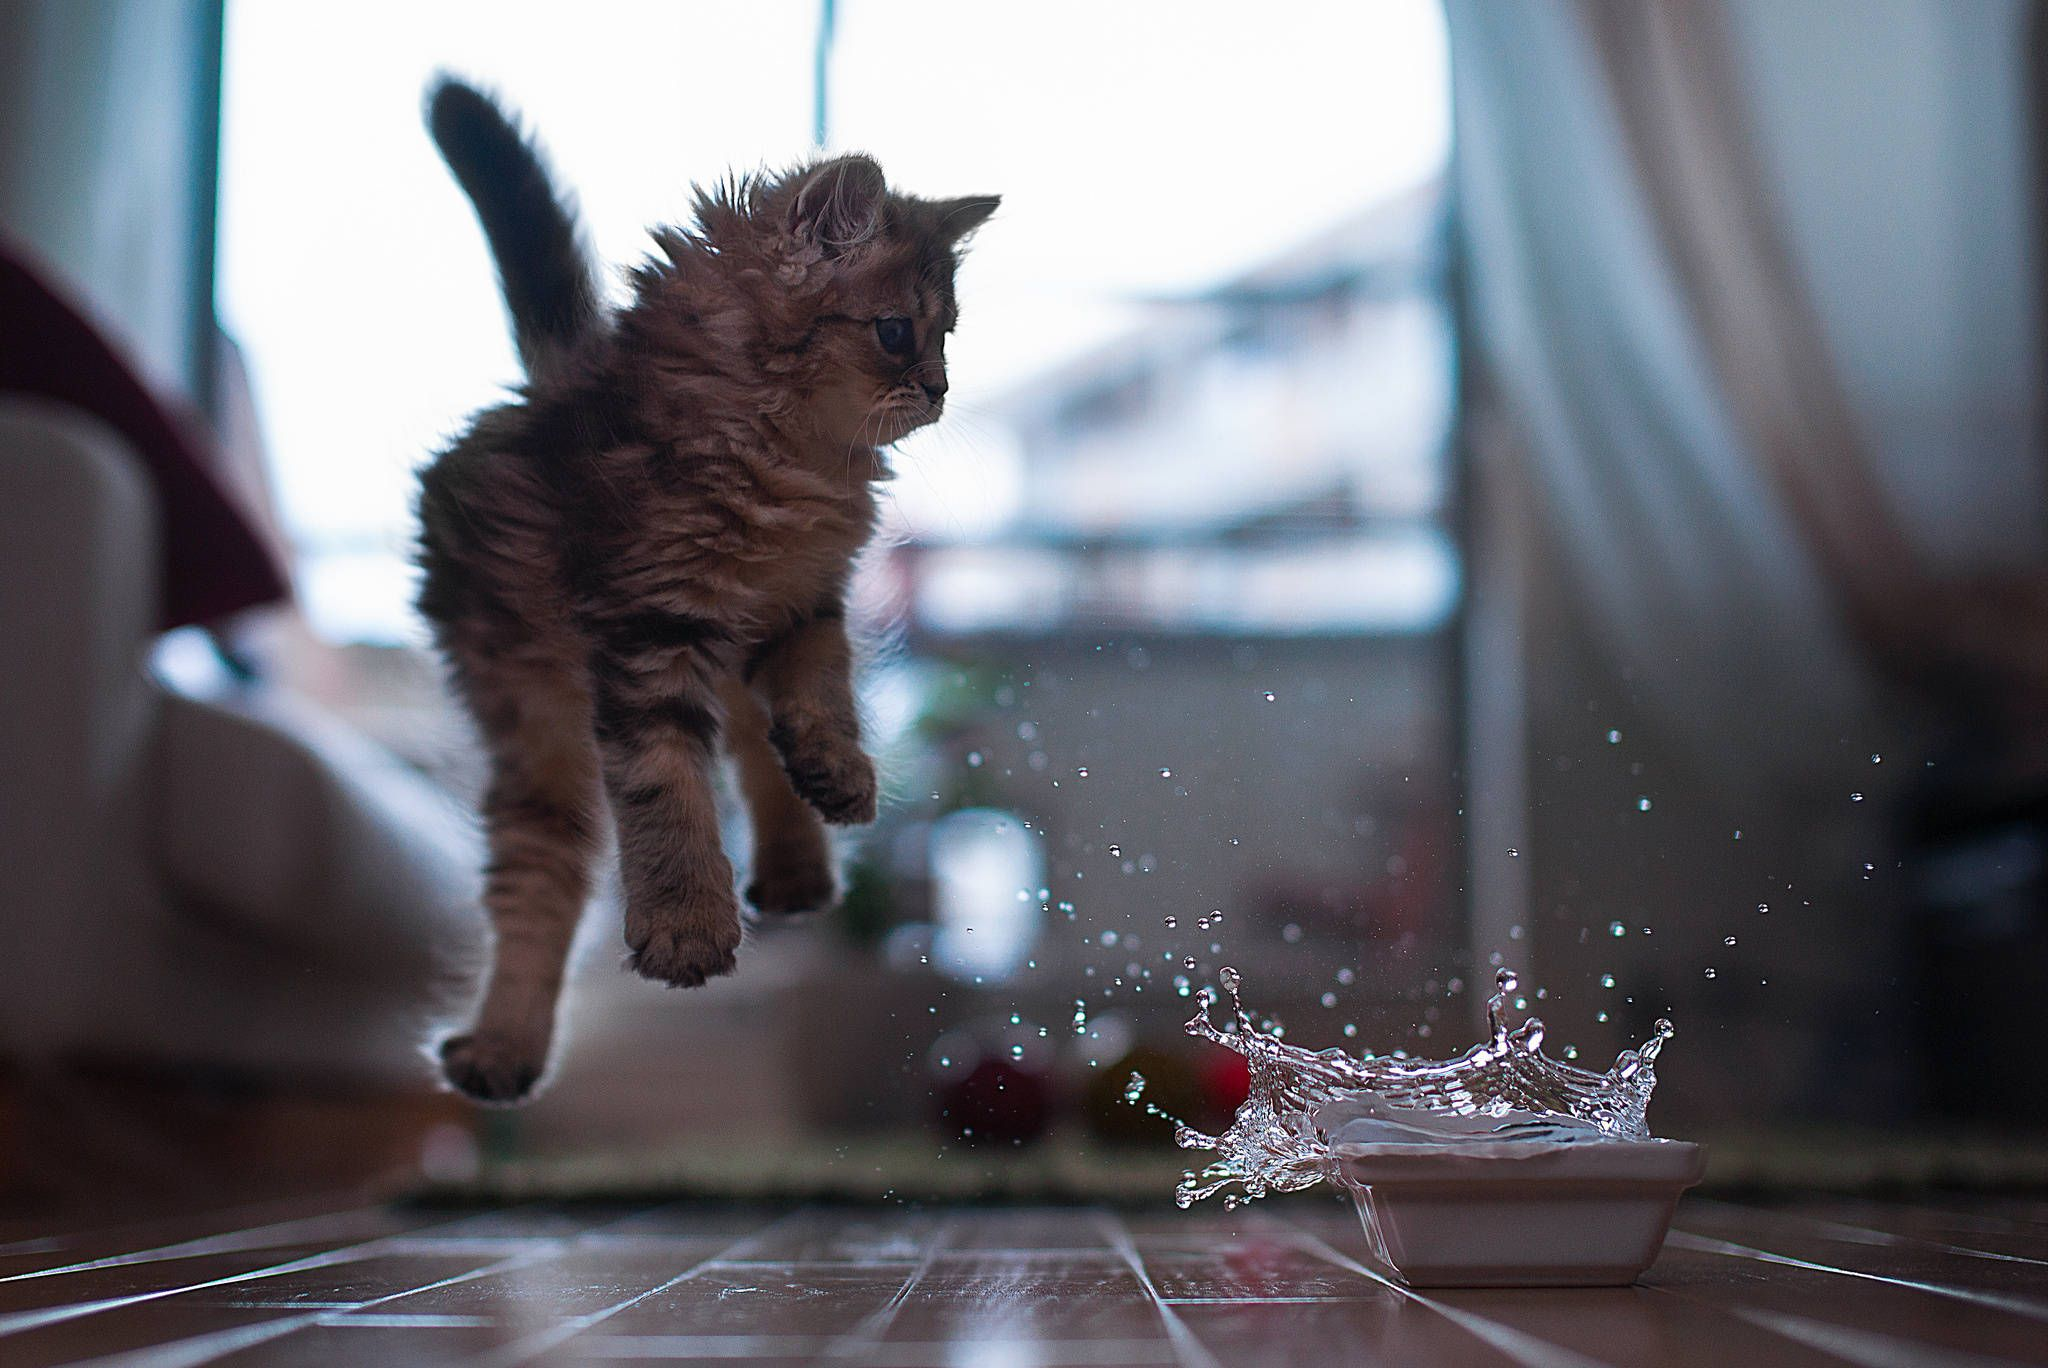 Cat Photos Taken At Just The Right Moment Kittens Cutest Cute Little Kittens Jumping Cat